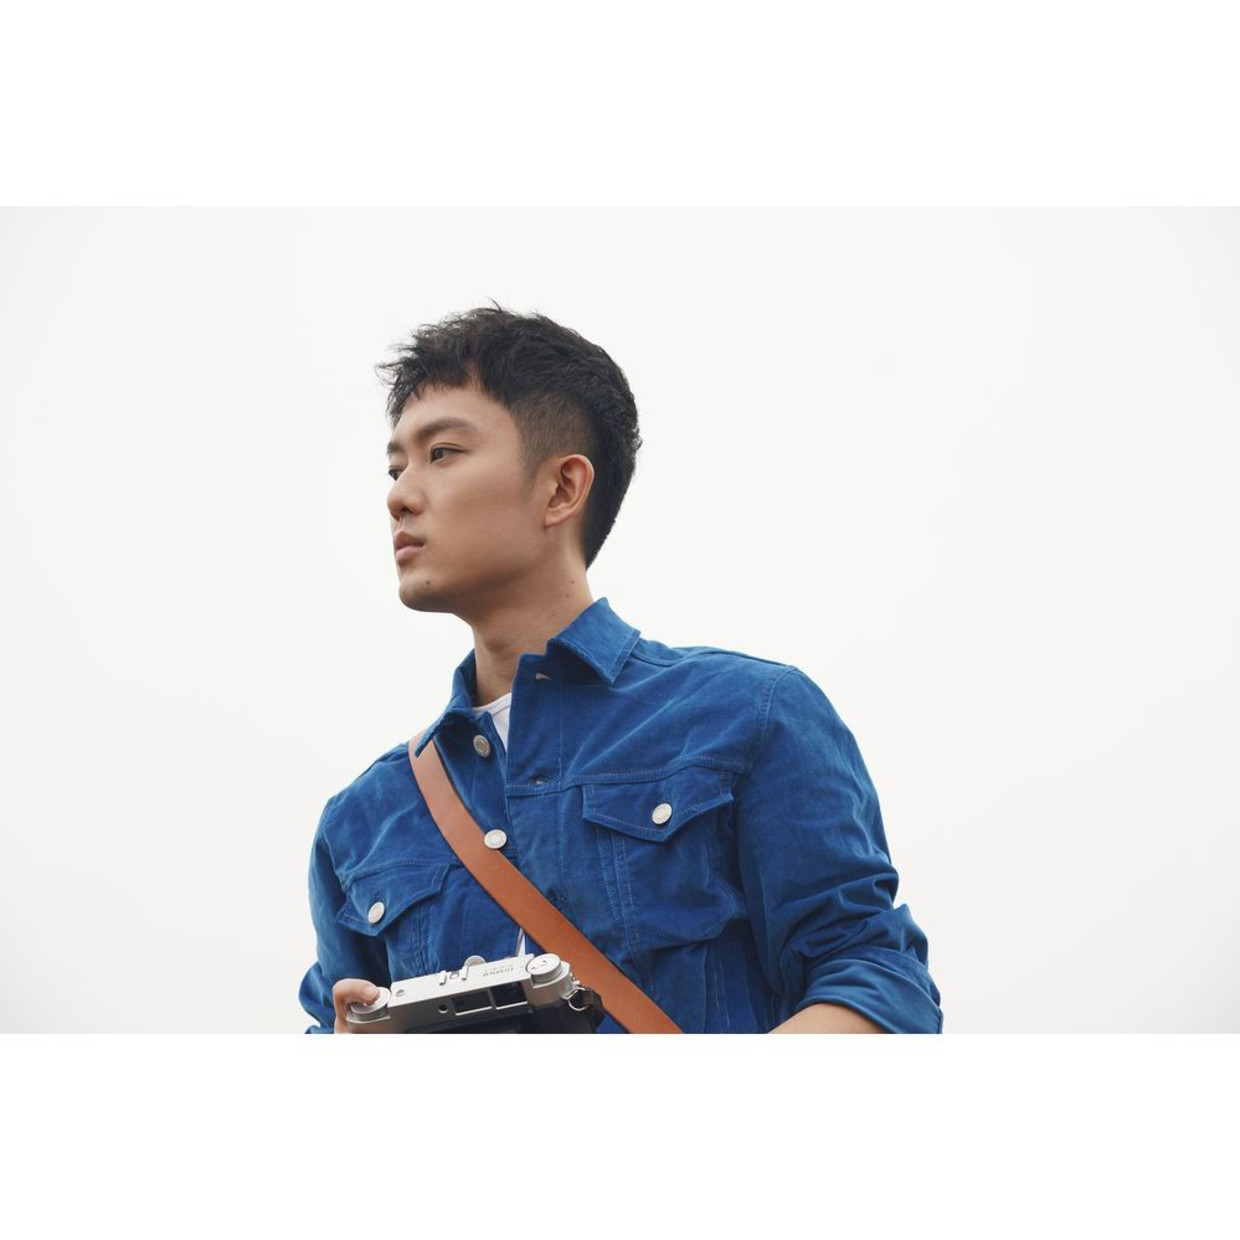 artist Qin Hao Singer, songwriter and photographer. Born in Chongqing in 1986, he now lives in Chongqing. Qin Hao graduated...